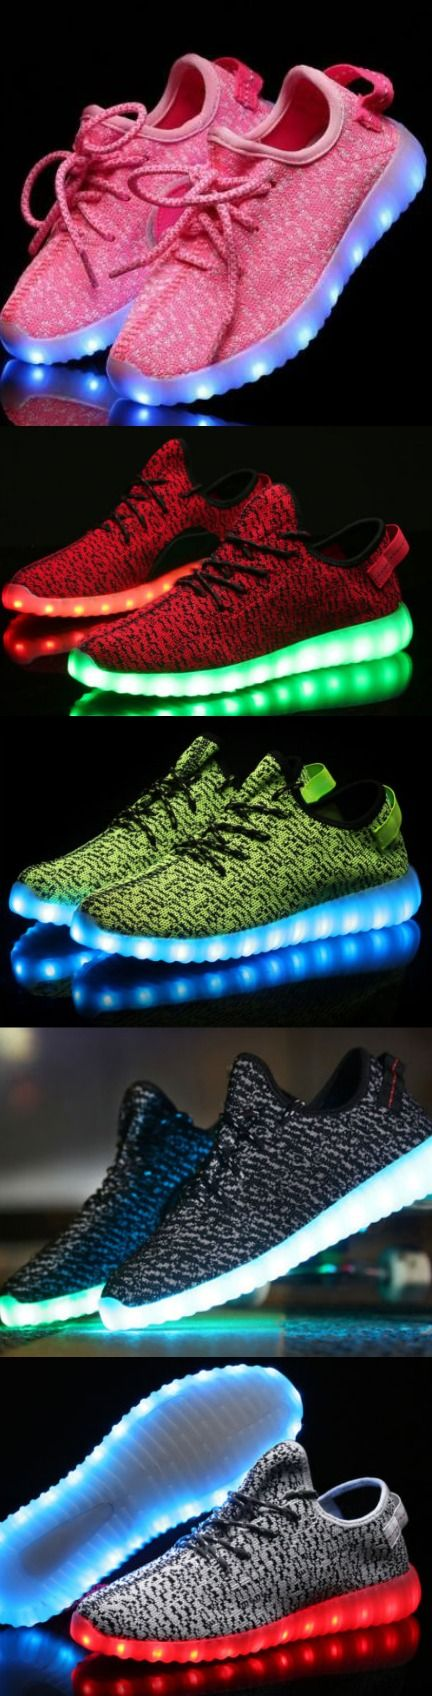 Glow Kicks! Click The Image To Buy It Now or Tag Someone You Want To Buy This For. #glowkicks